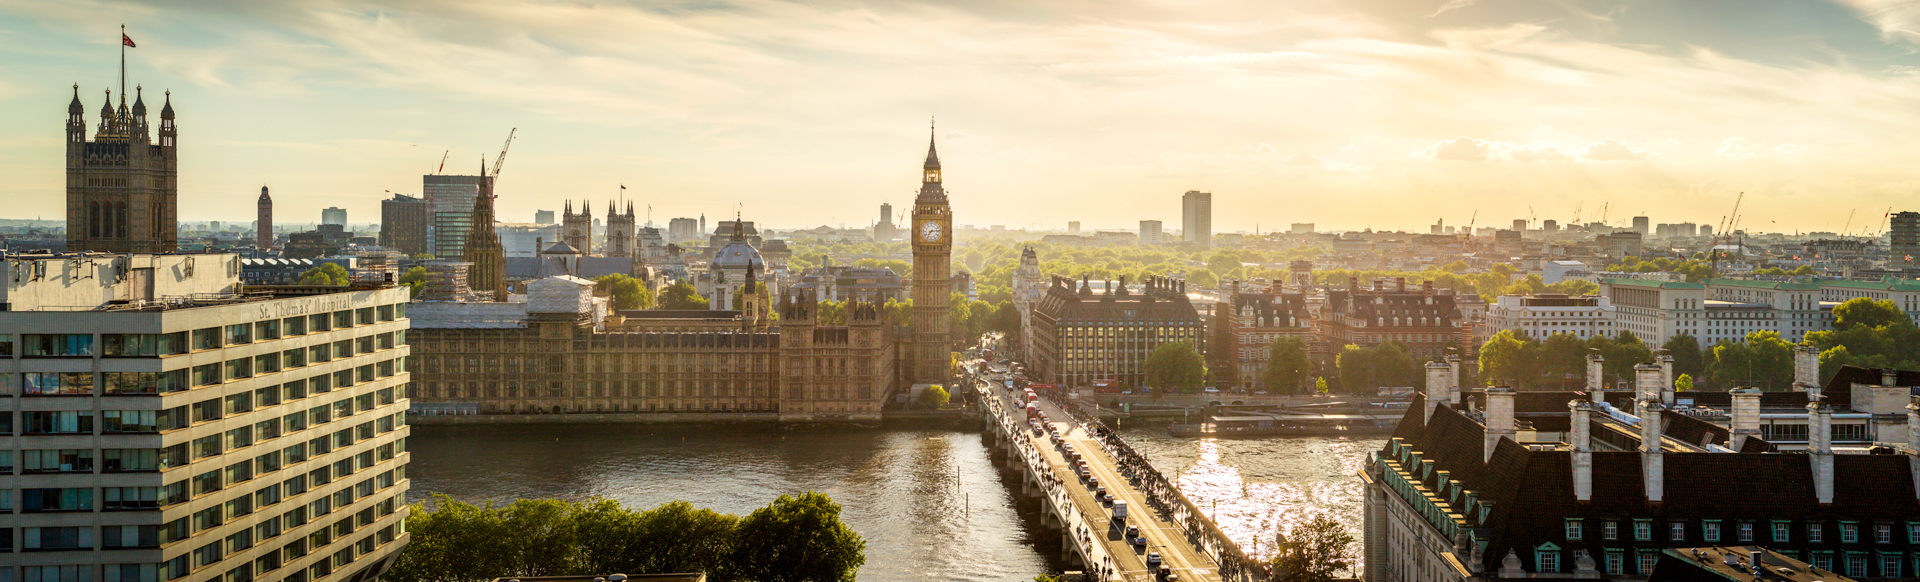 View of the Houses of Parliament, Big Ben and the river Thames.